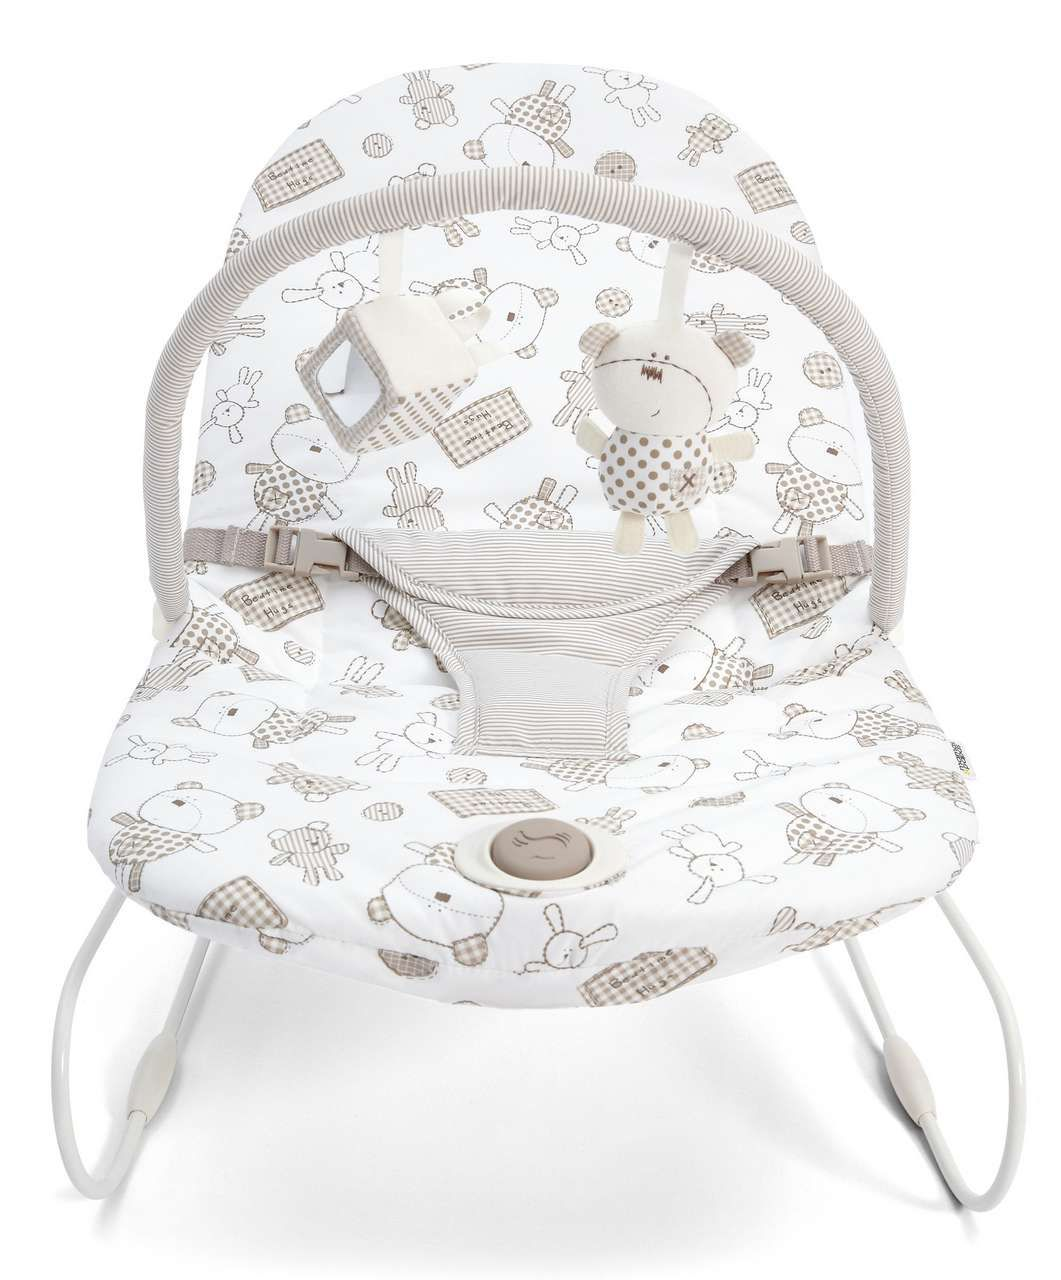 Swing Chair Mamas And Papas White Covers Sashes Bubble Bouncer Bedtime Hugs View All Rockers Bouncers Swings